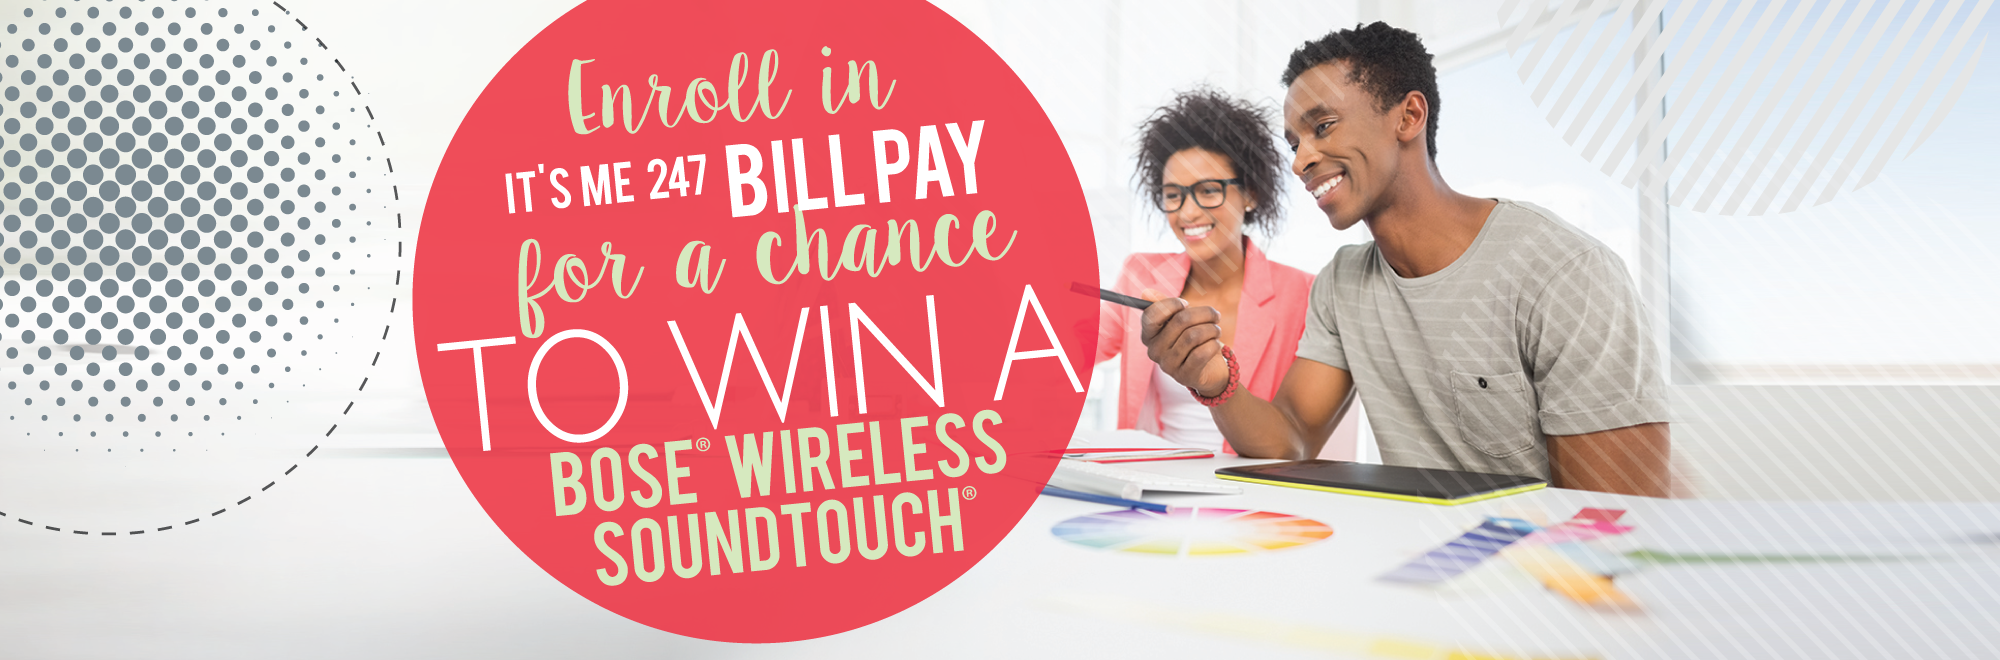 Enroll in Bill Pay banner image